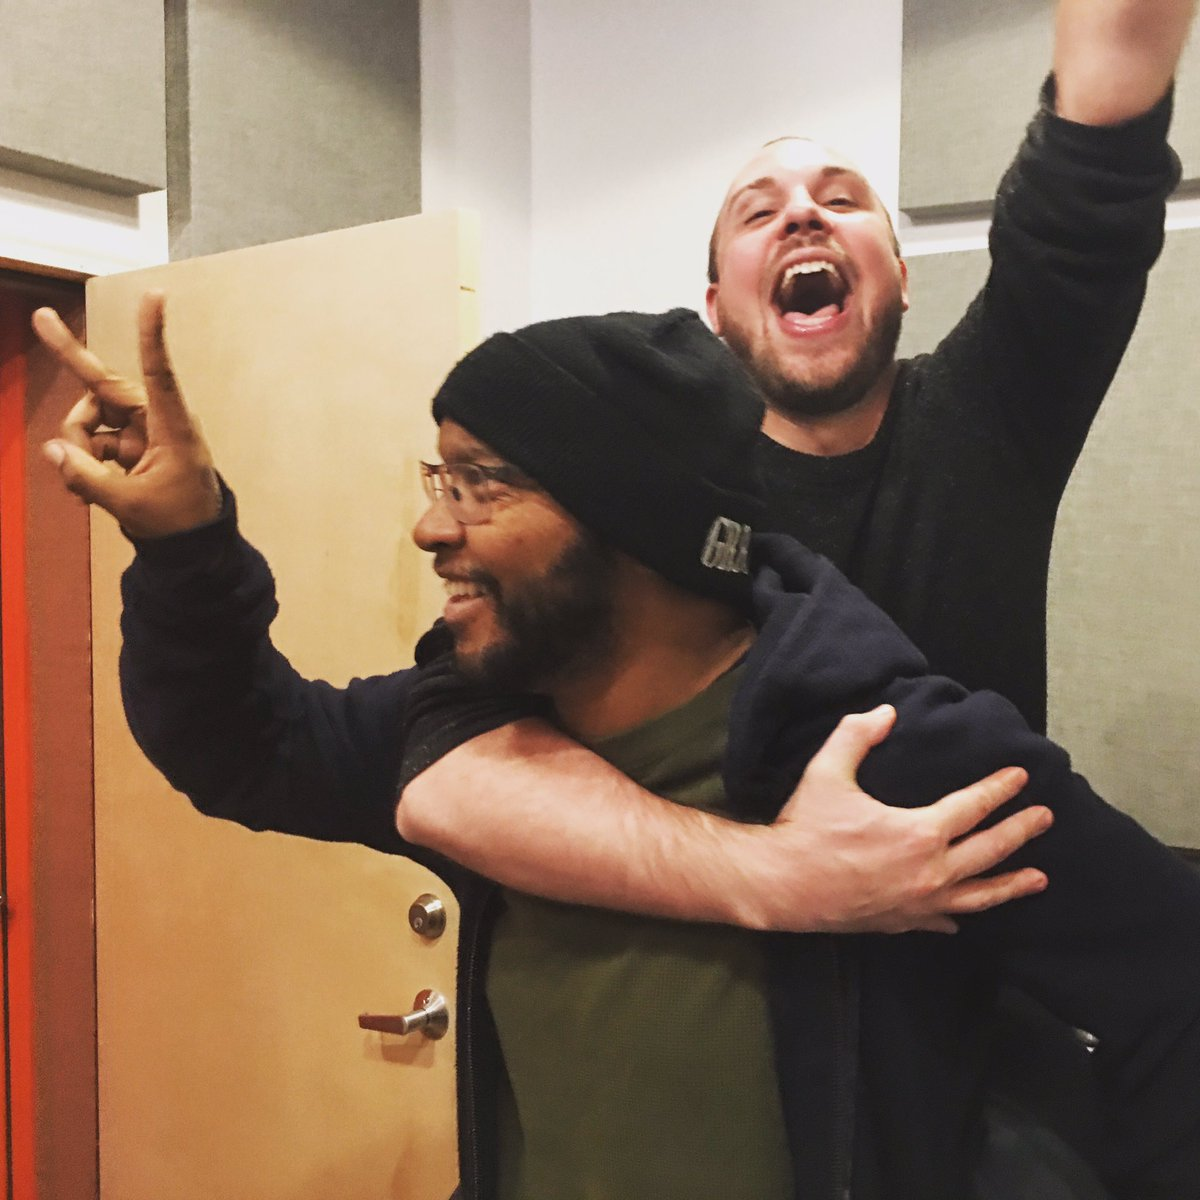 OMG IT'S DONE!!! New @yeahrightpos album in the can. https://t.co/Zm5L5PEiW5